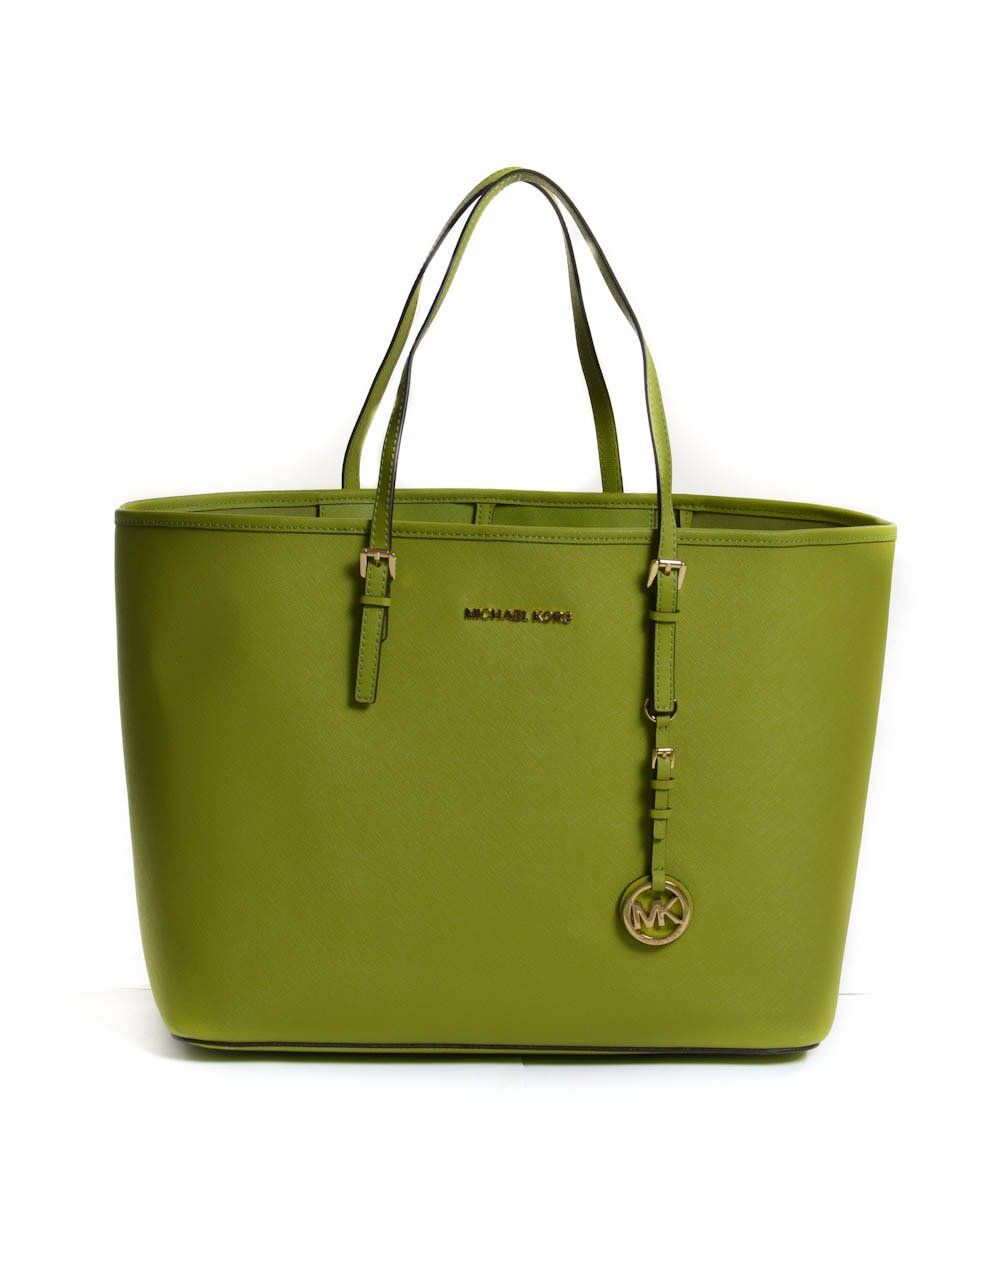 Michael Kors MD Travel Tote